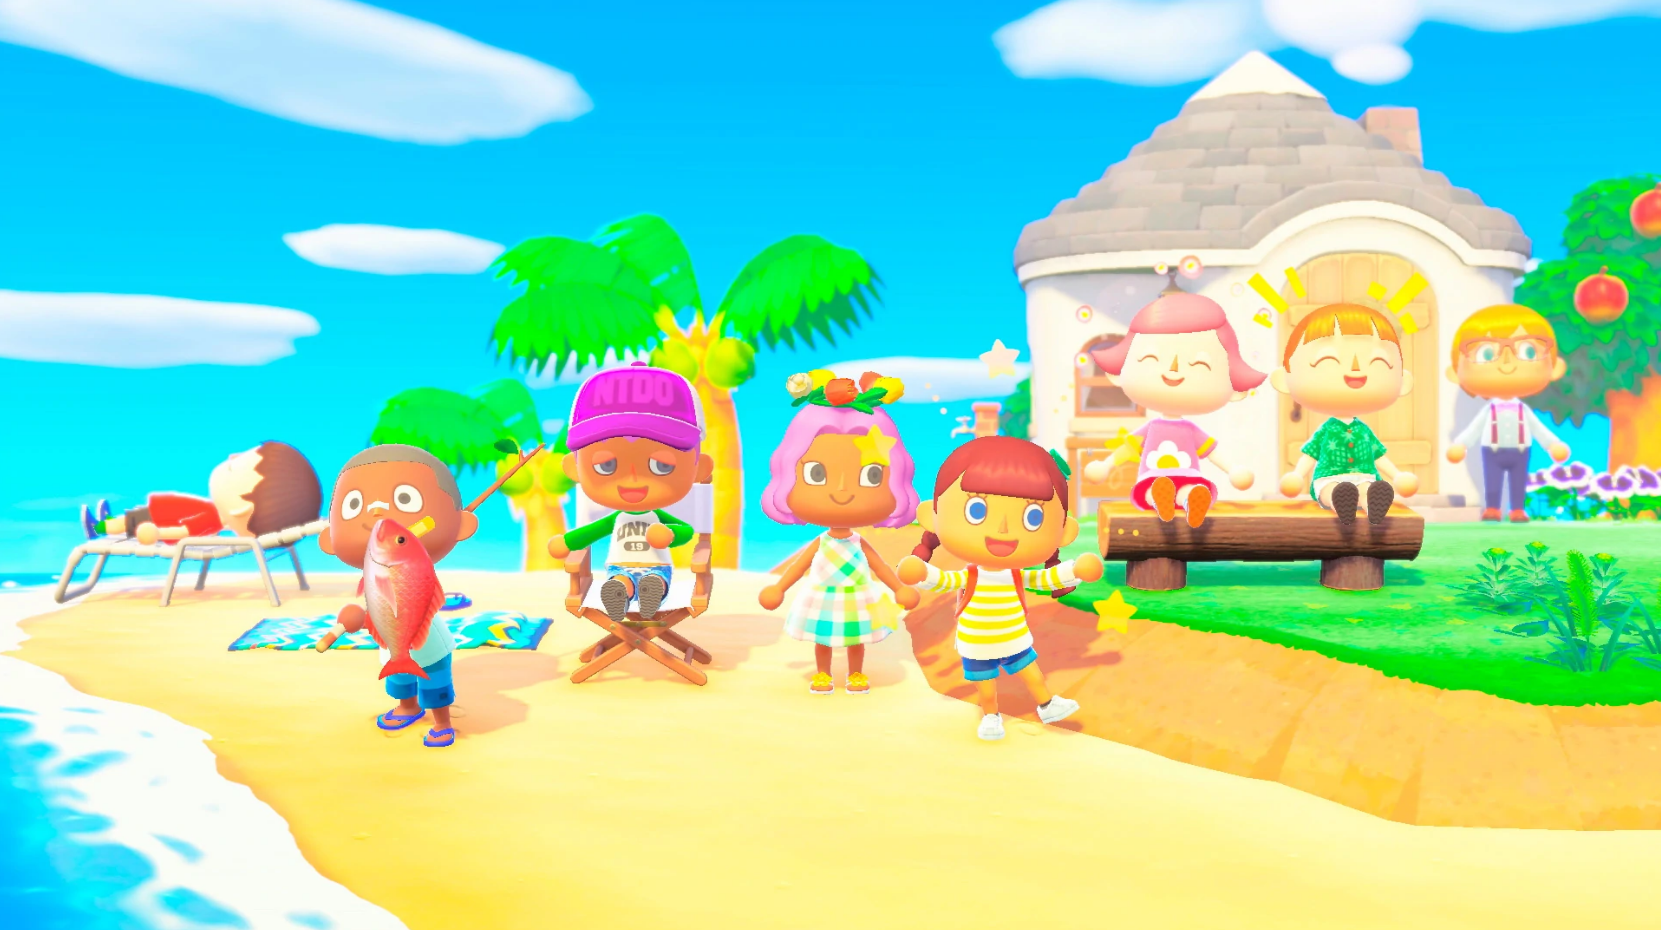 Animal Crossing: New Horizons group of characters in summer